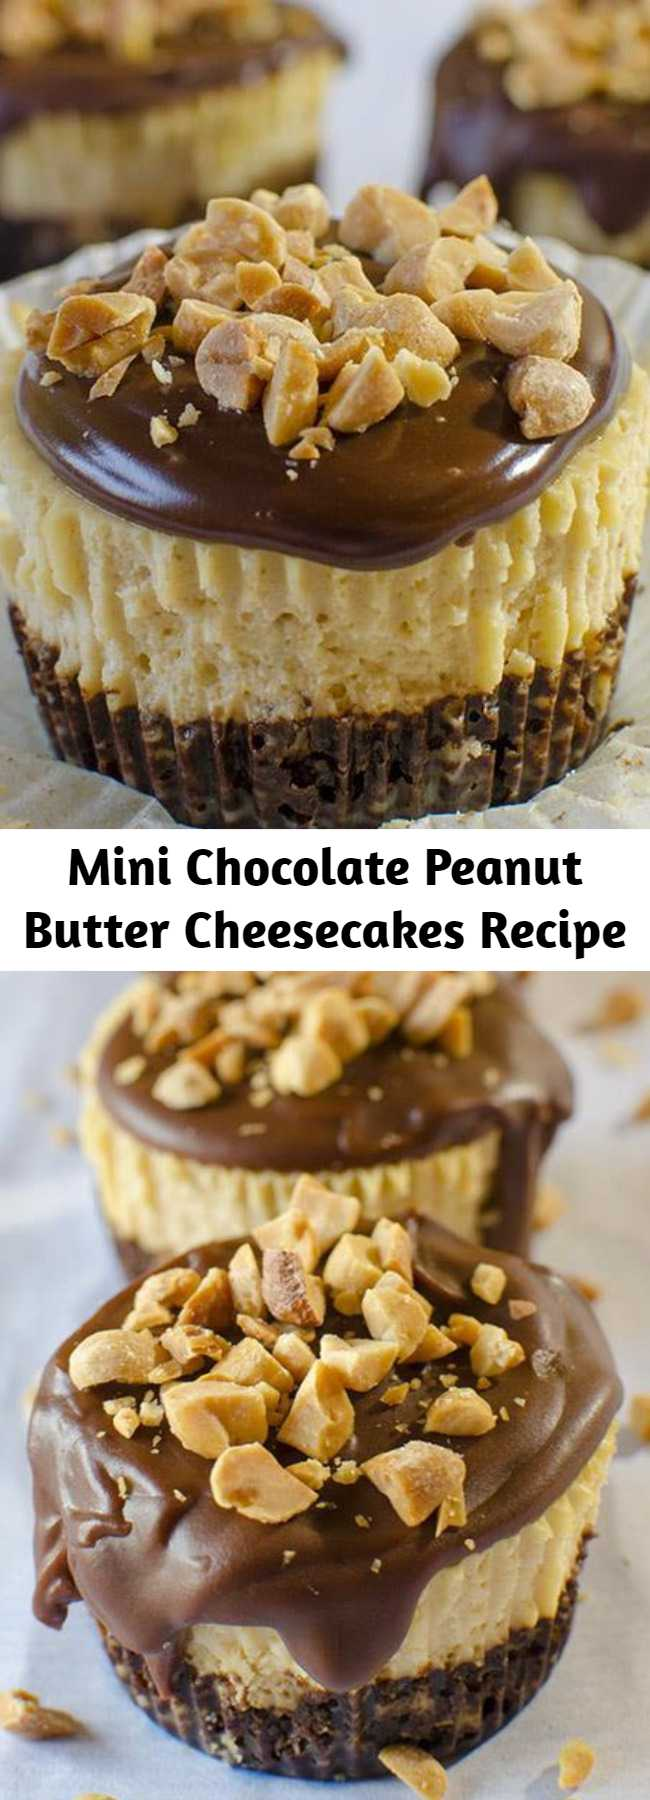 Mini Chocolate Peanut Butter Cheesecakes Recipe - Mini Chocolate Peanut Butter Cheesecakes are delicious individual portions of peanut butter cheesecakes with chocolate graham cracker crust and chocolate ganache topping. This cute homemade cheesecake recipe is a great dessert for your child's school bake sale, or your next party!